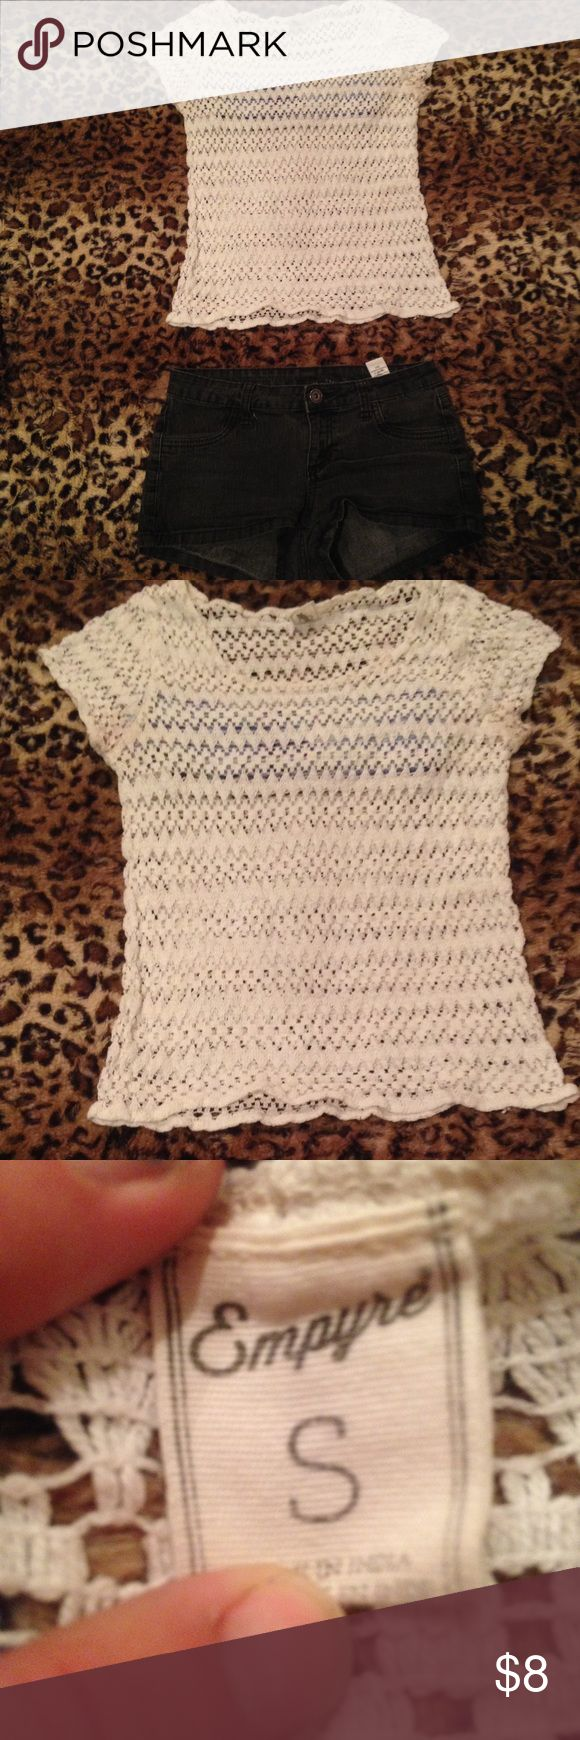 Crotchet See Through Top White Crotchet See through Top, great condition, once loved but it's time for it to go, i need room in my closet‼️ Perfect to wear as a cover up or any time in the sun🌞 Tops Tees - Short Sleeve